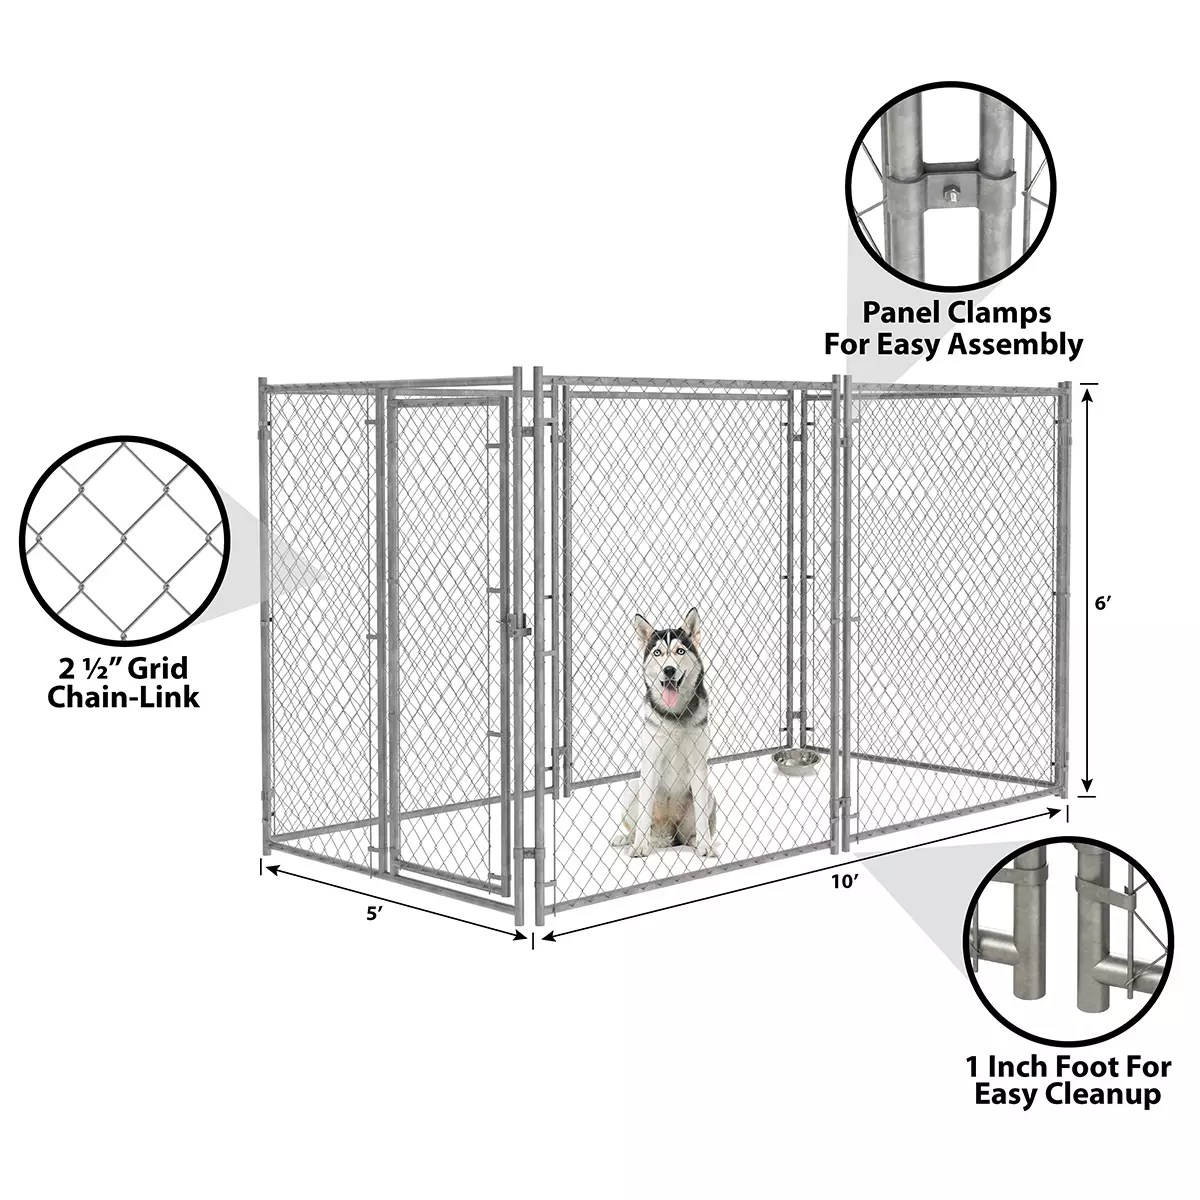 6ft H X 5ft W Chain Link Kennel Panel